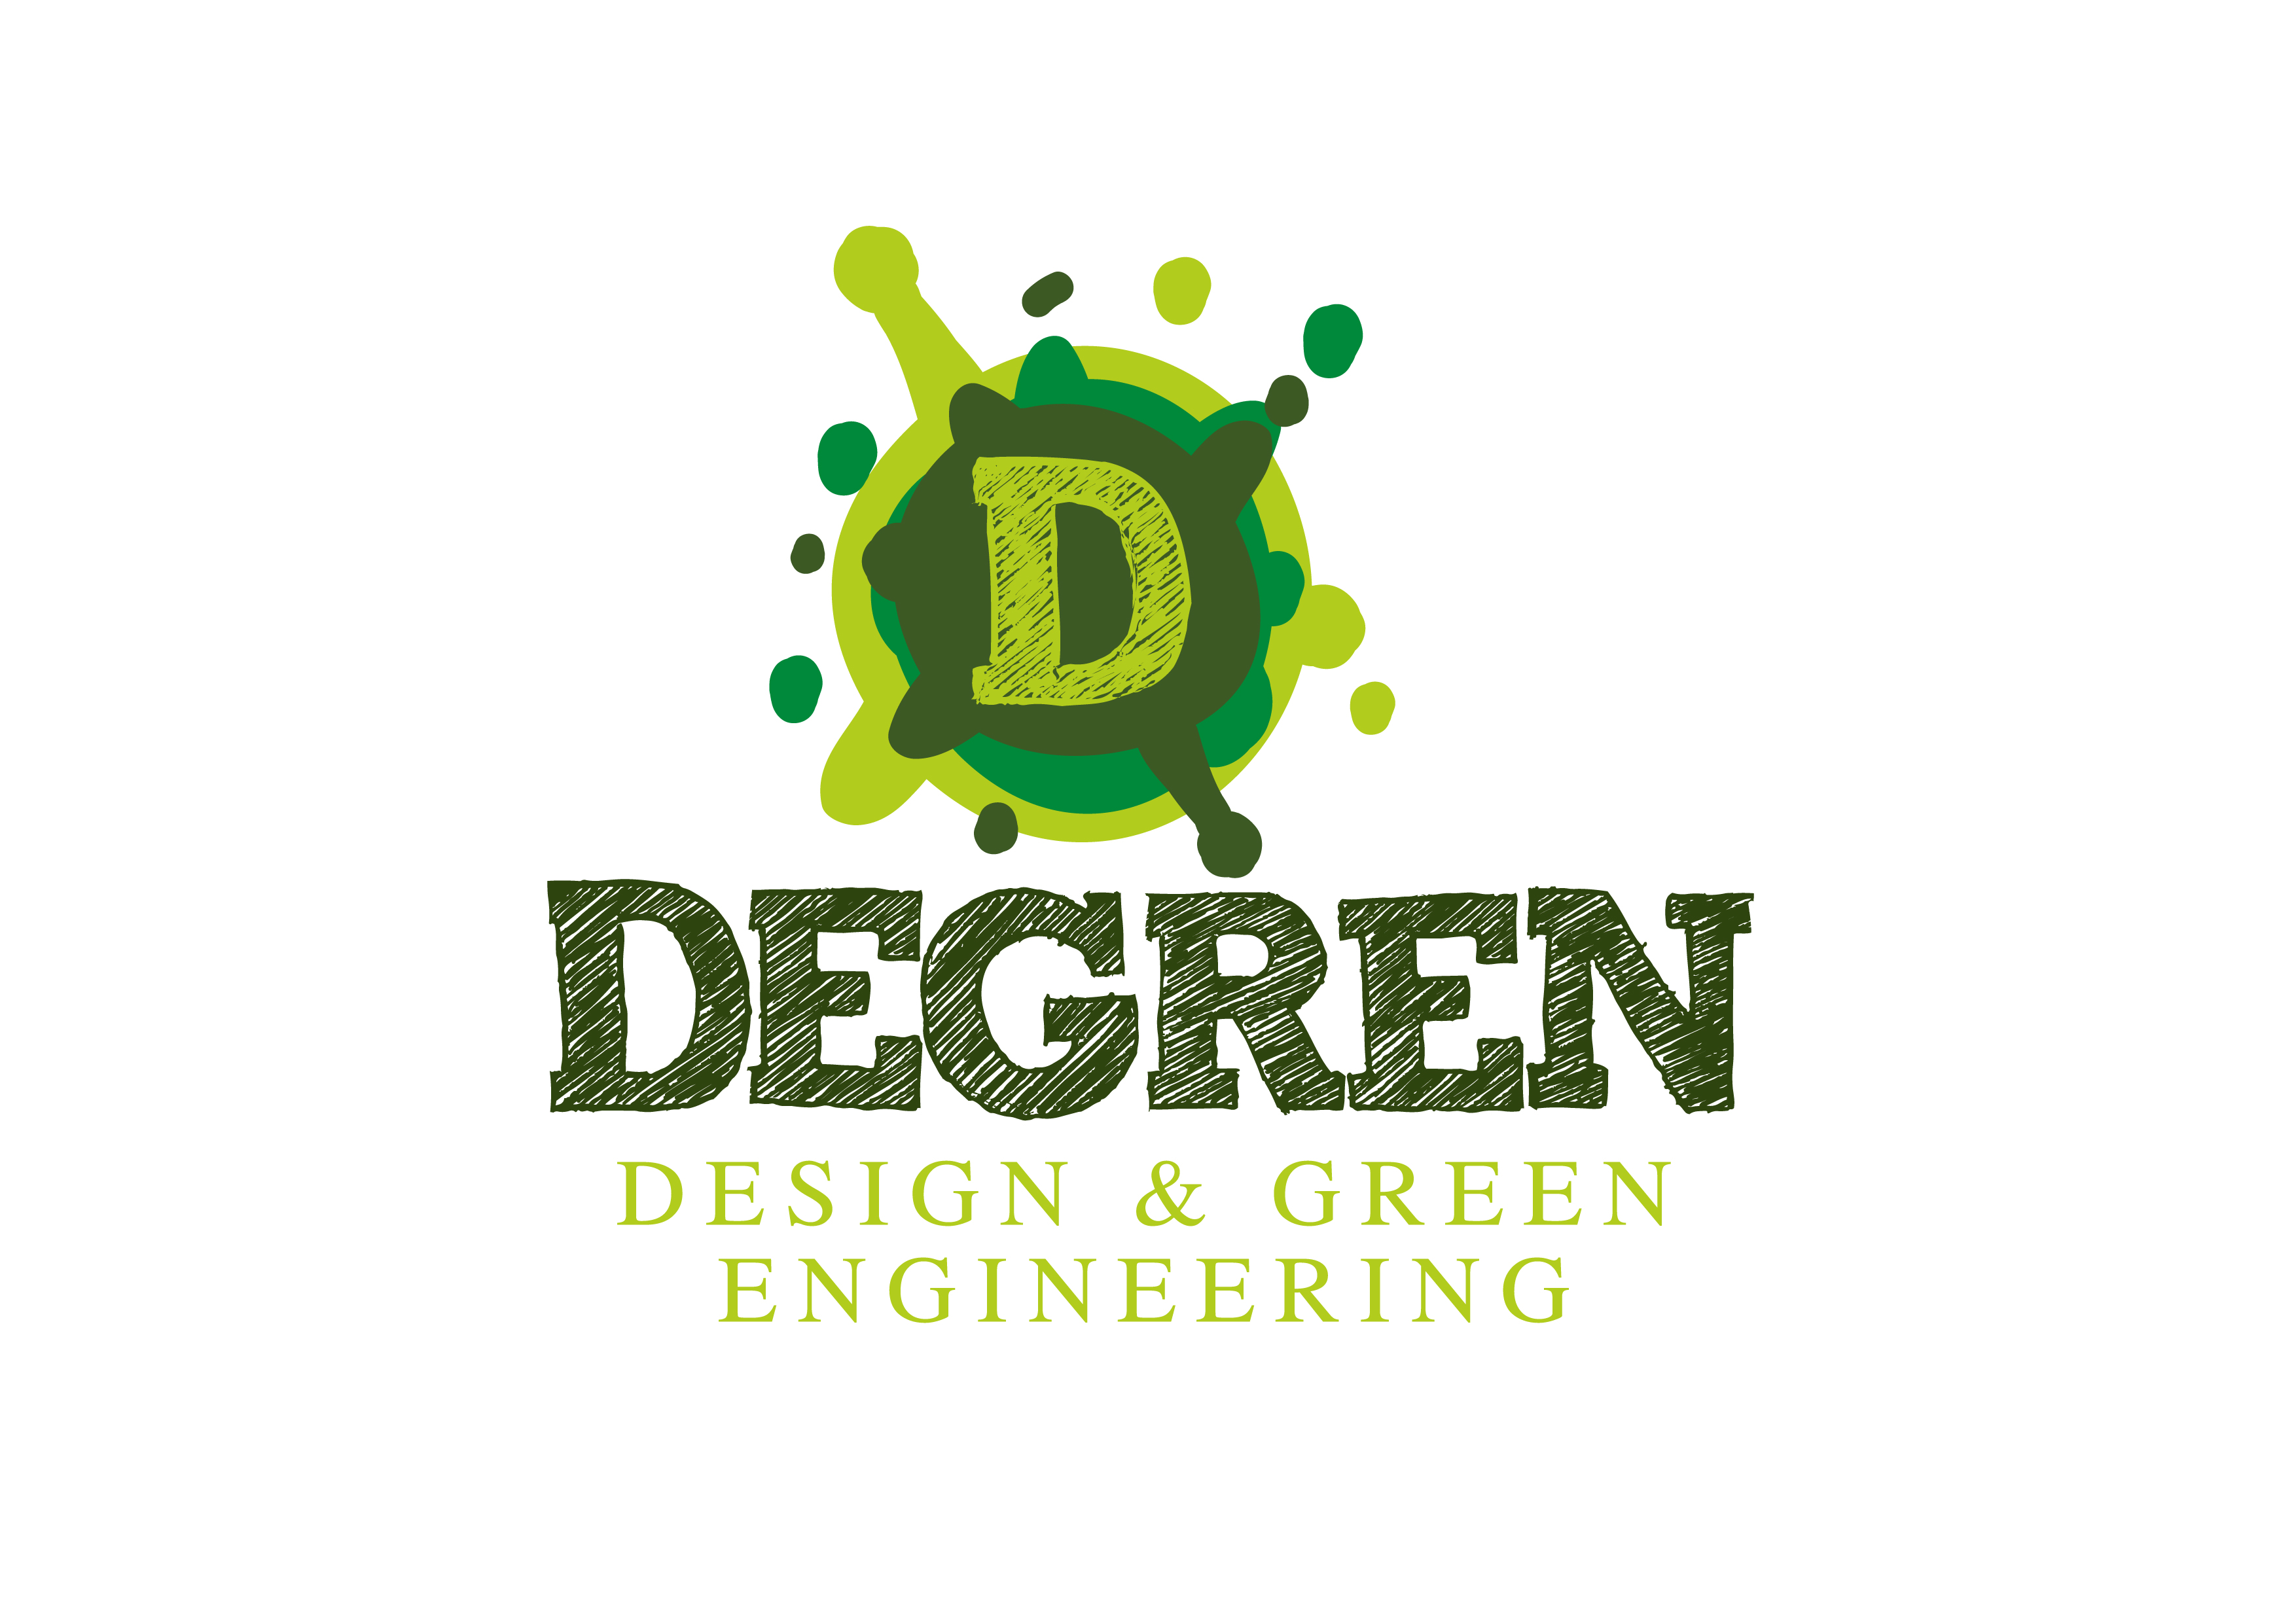 DEGREN (DESIGN & GREEN ENGINEERING)